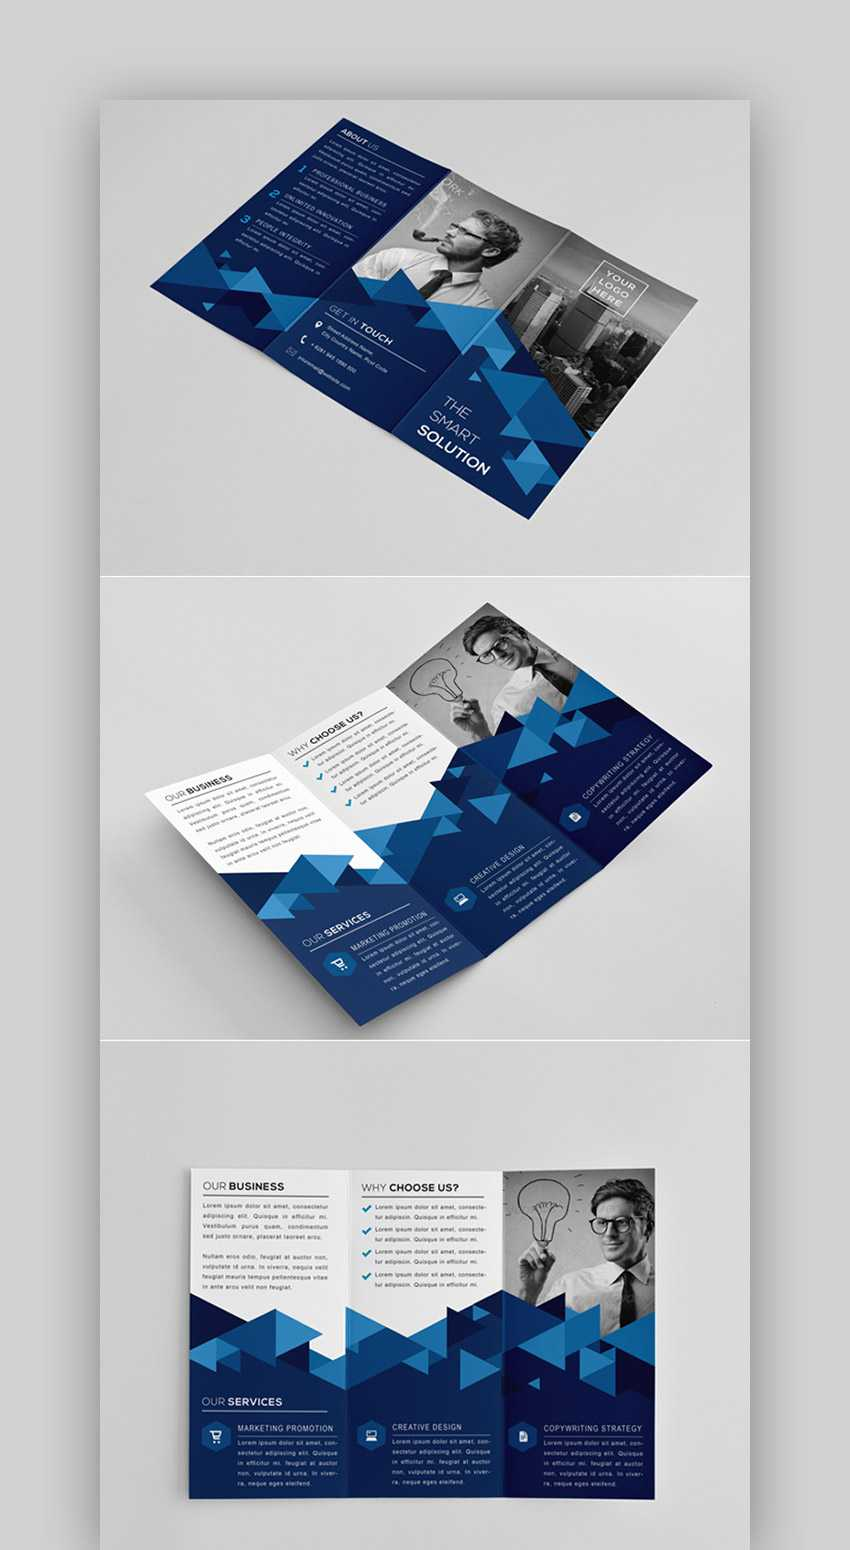 35 Best Indesign Brochure Templates – Creative Business Throughout Brochure Templates Free Download Indesign